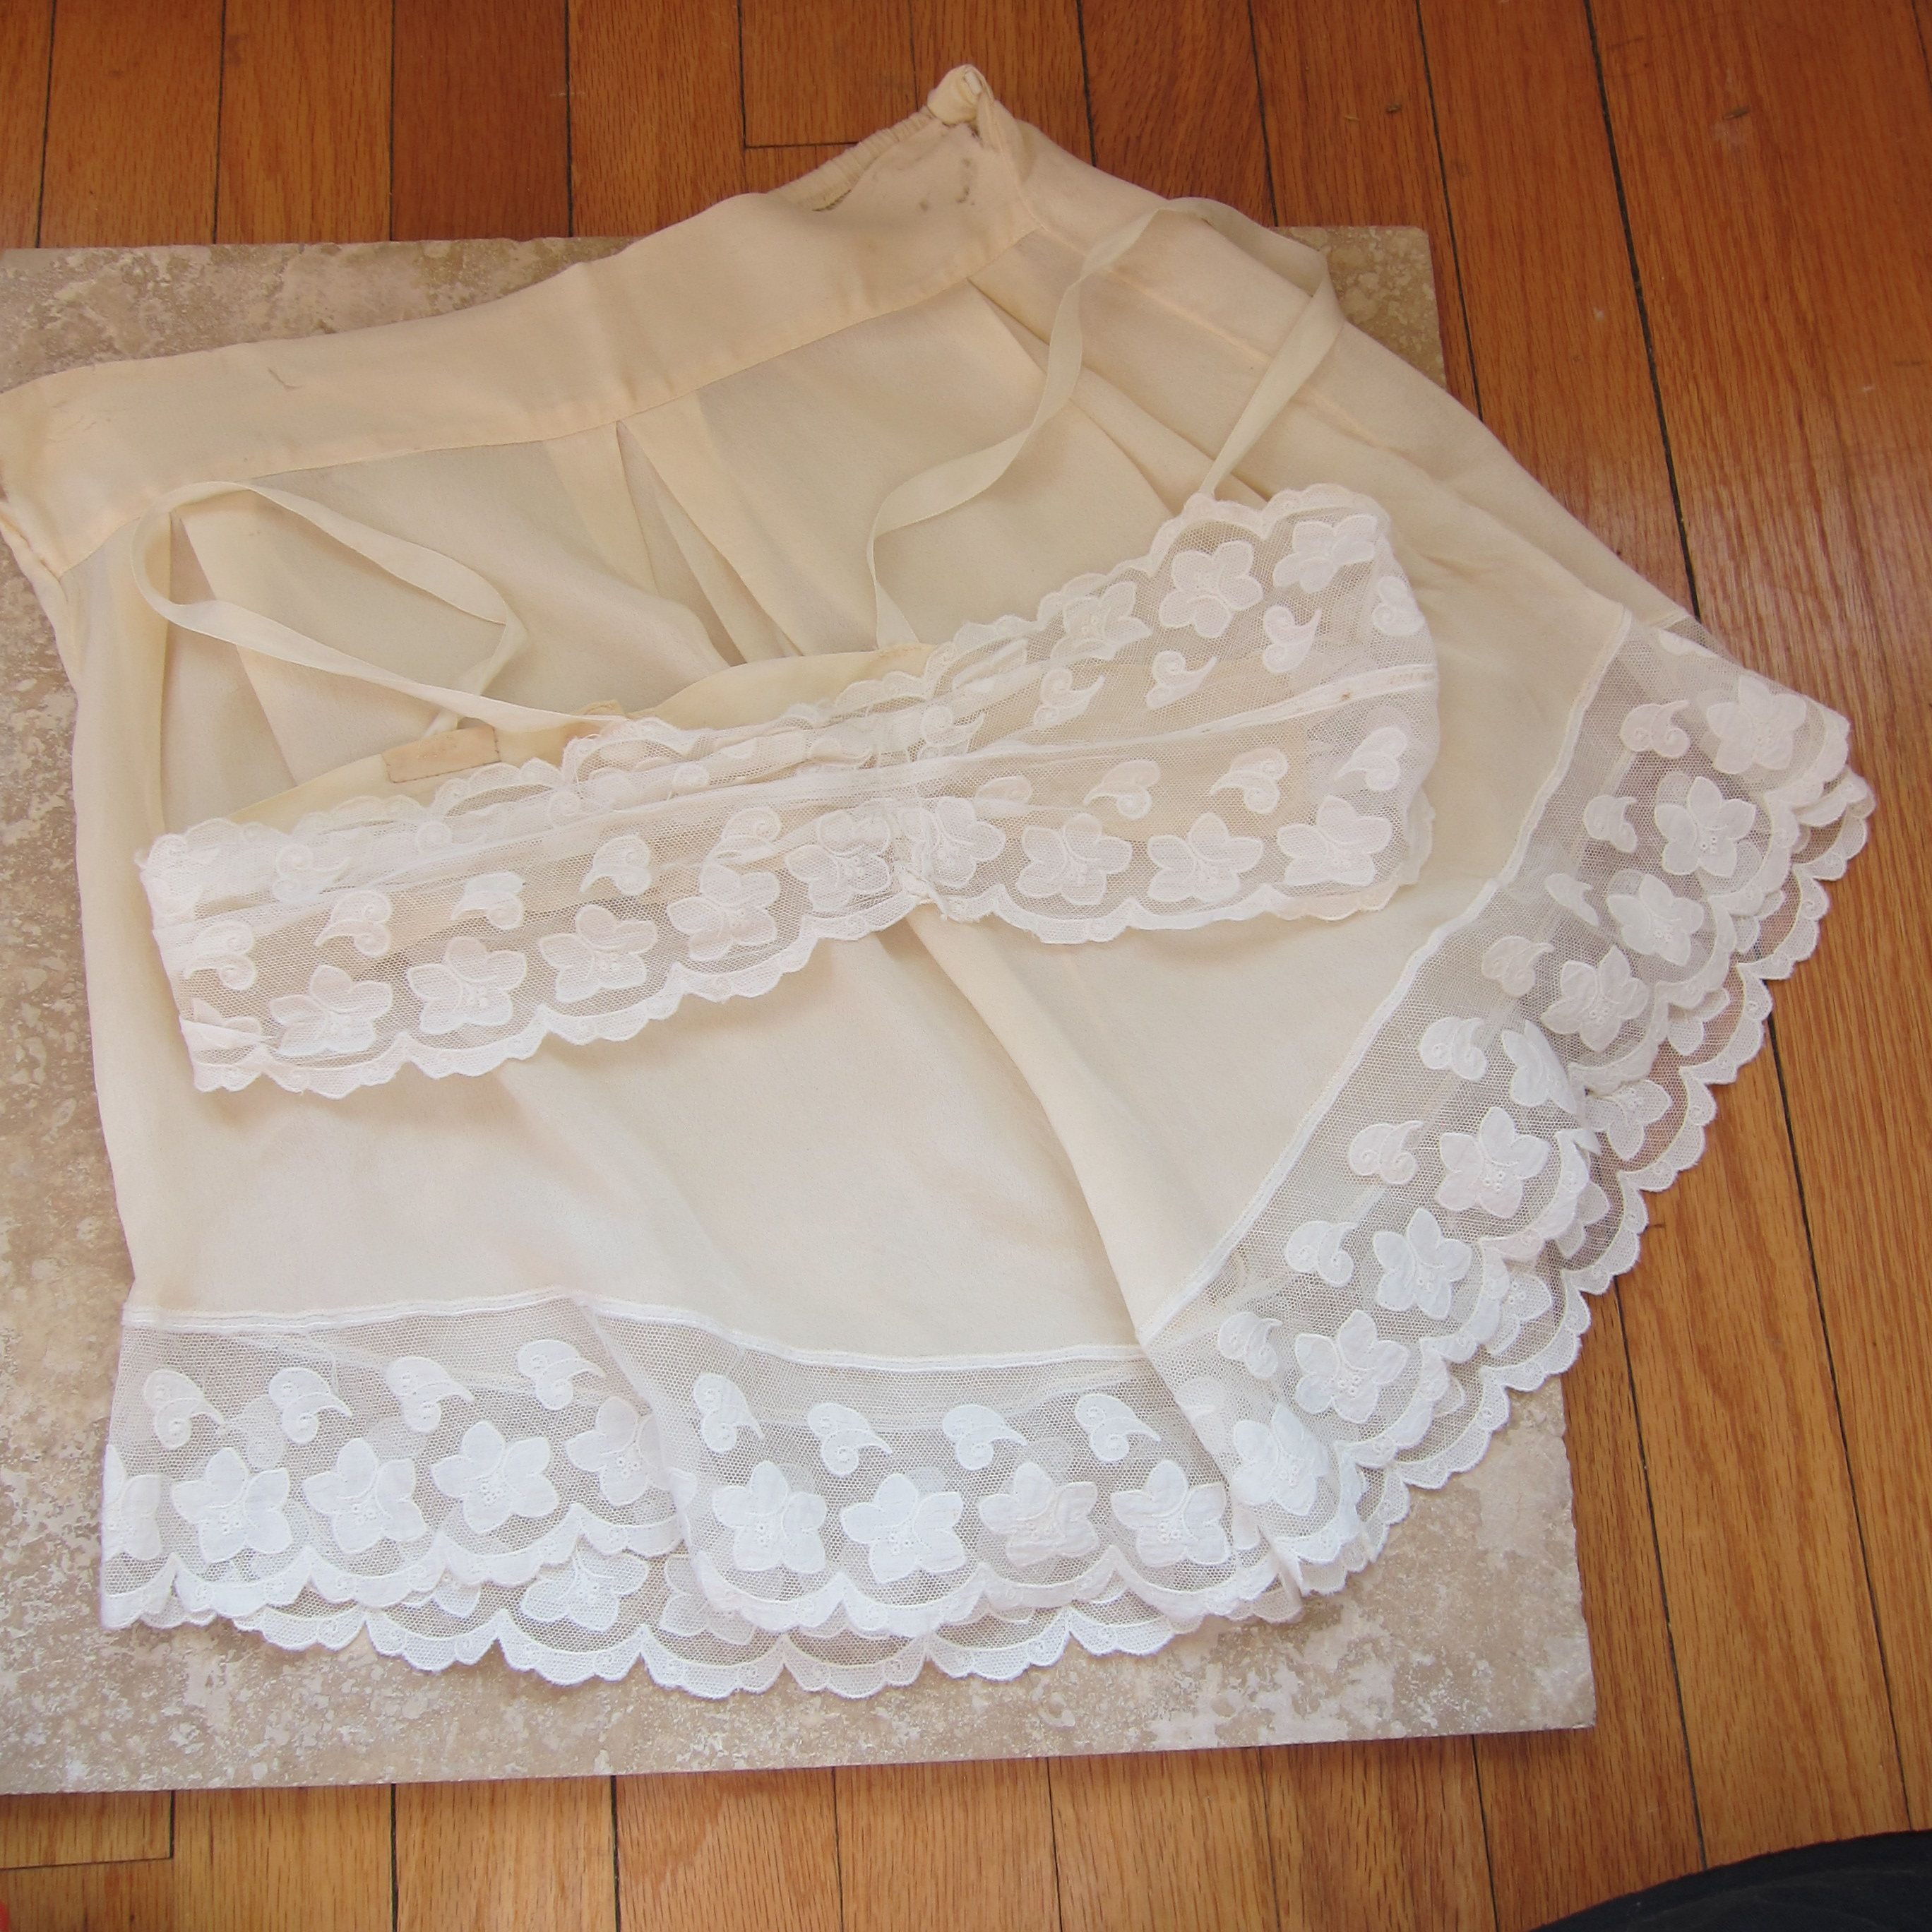 1920s Bra and Panties Set   20s Lingerie Tap Pants Dance Shorts   Cream  Mesh Lace Bra and Knickers Set in Silk AS IS by BasyaBerkman on Etsy 62ede7a11